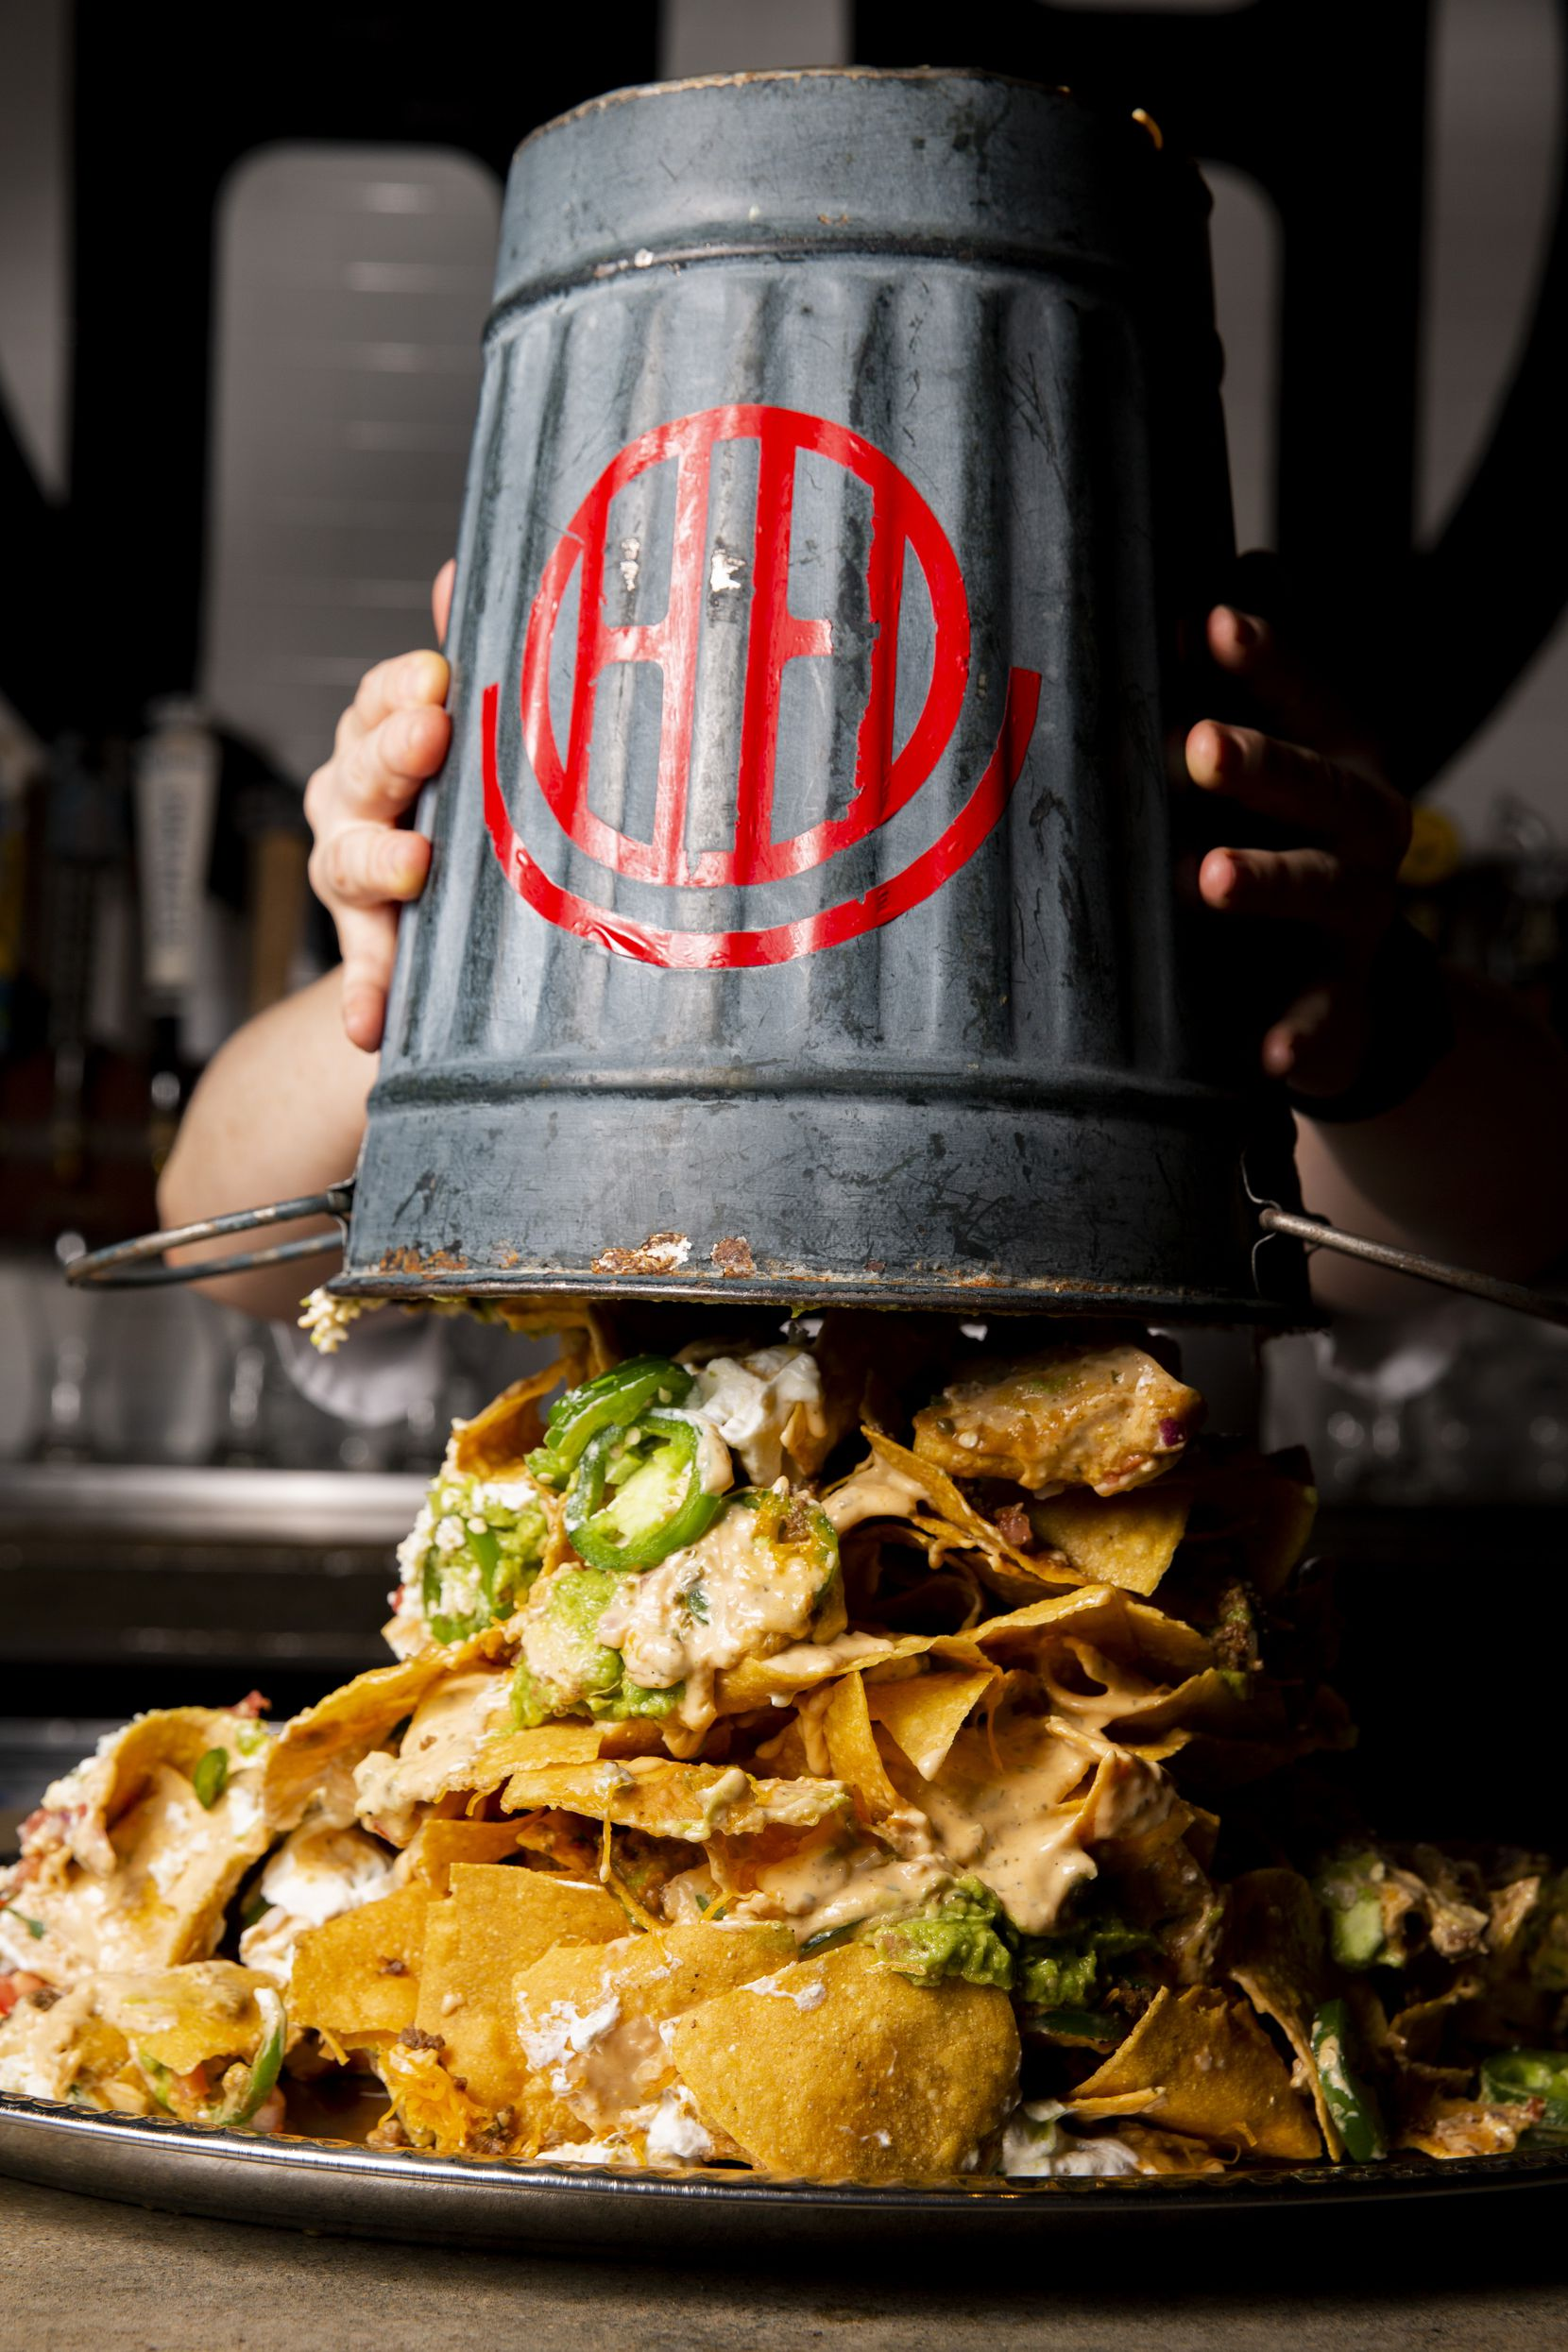 The nacho tower at Happiest Hour comes with chips, cheese, ground beef, guacamole and more, stacked in a bucket and then unleashed onto a massive silver platter. The effort is done tableside — and the whole room watches.